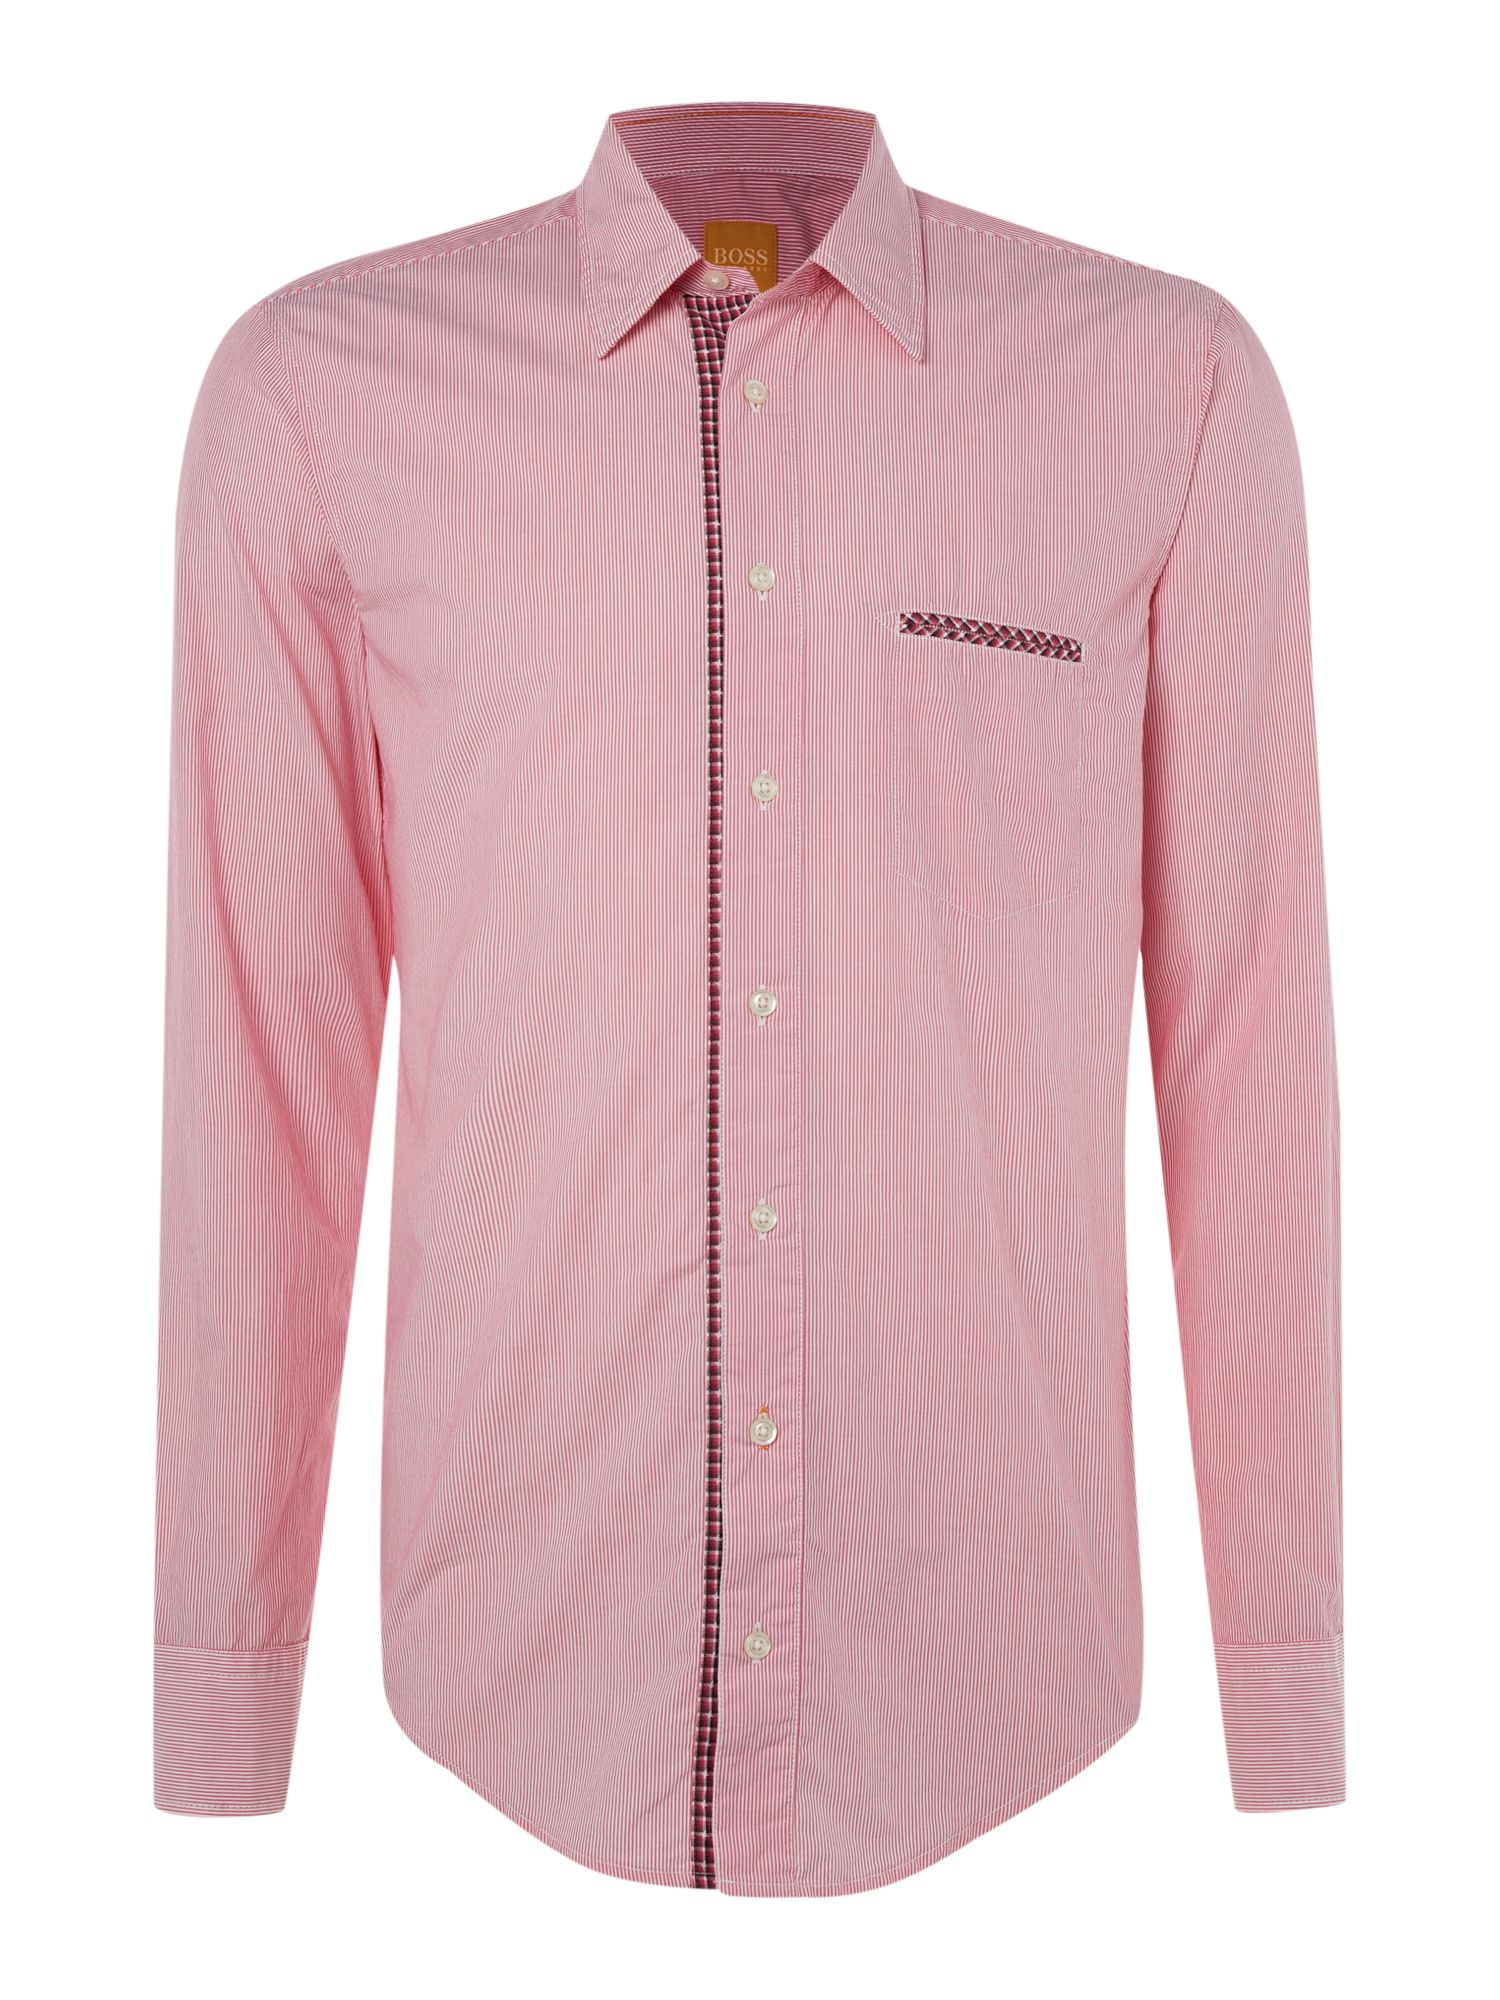 hugo boss long sleeve fine stripe shirt in pink for men lyst. Black Bedroom Furniture Sets. Home Design Ideas